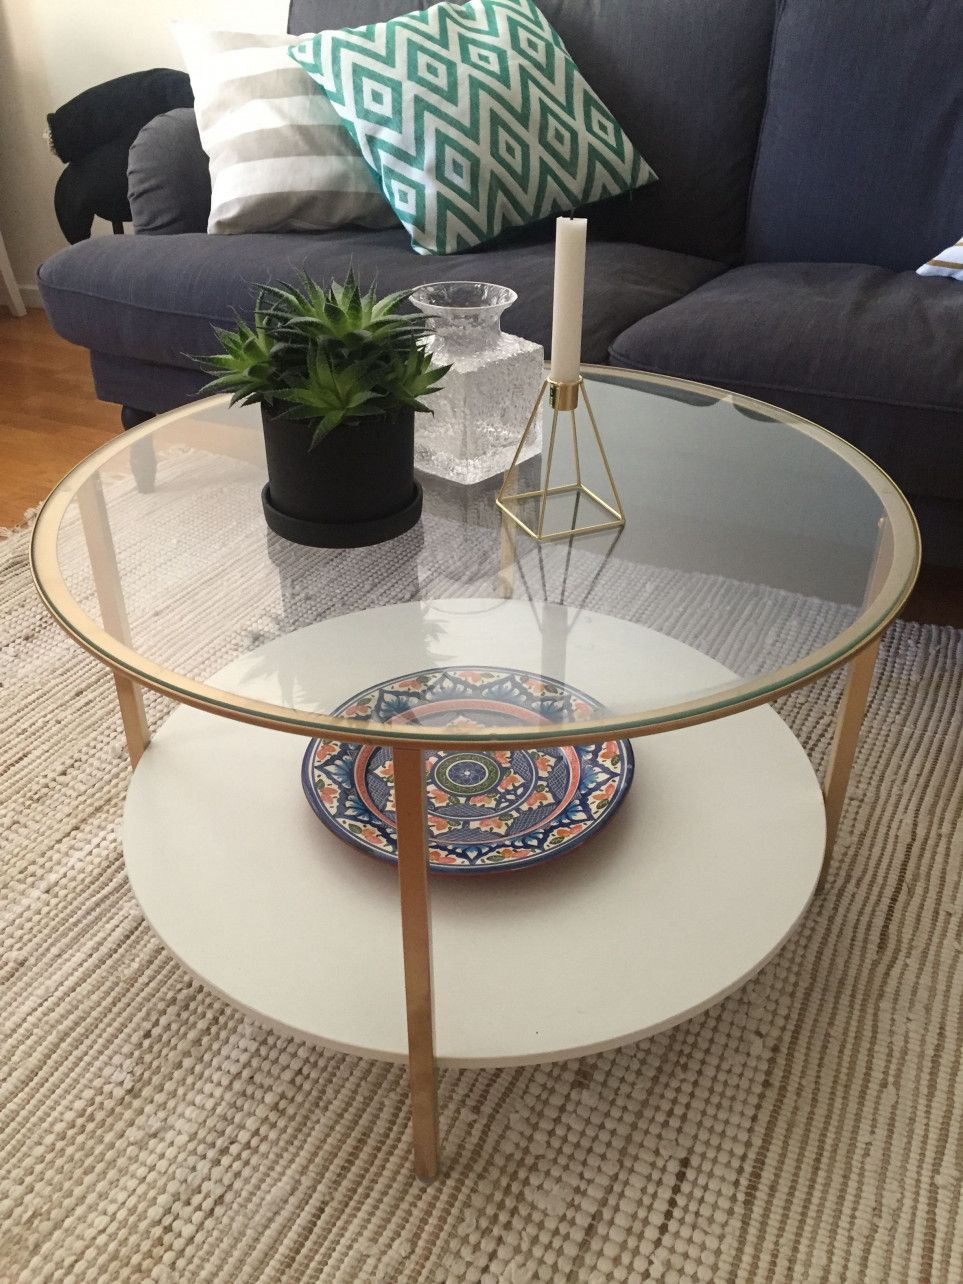 77 Luxury Ikea Round Glass Coffee Table 2020 Round Glass Coffee Table Ikea Coffee Table Coffee Table